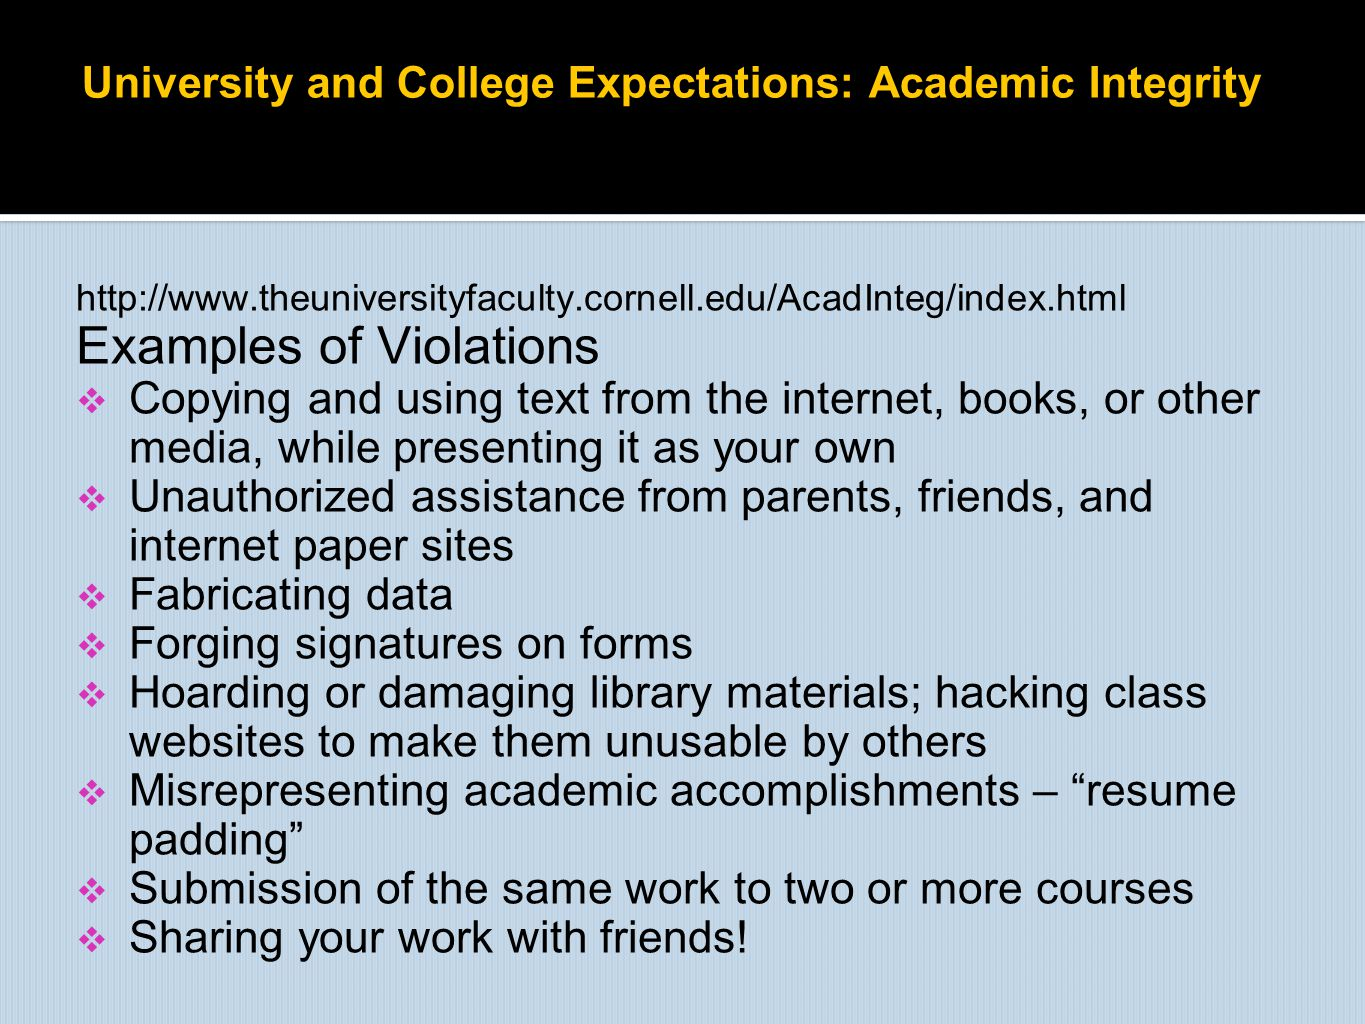 University and College Expectations: Academic Integrity http://www.theuniversityfaculty.cornell.edu/AcadInteg/index.html Examples of Violations  Copy